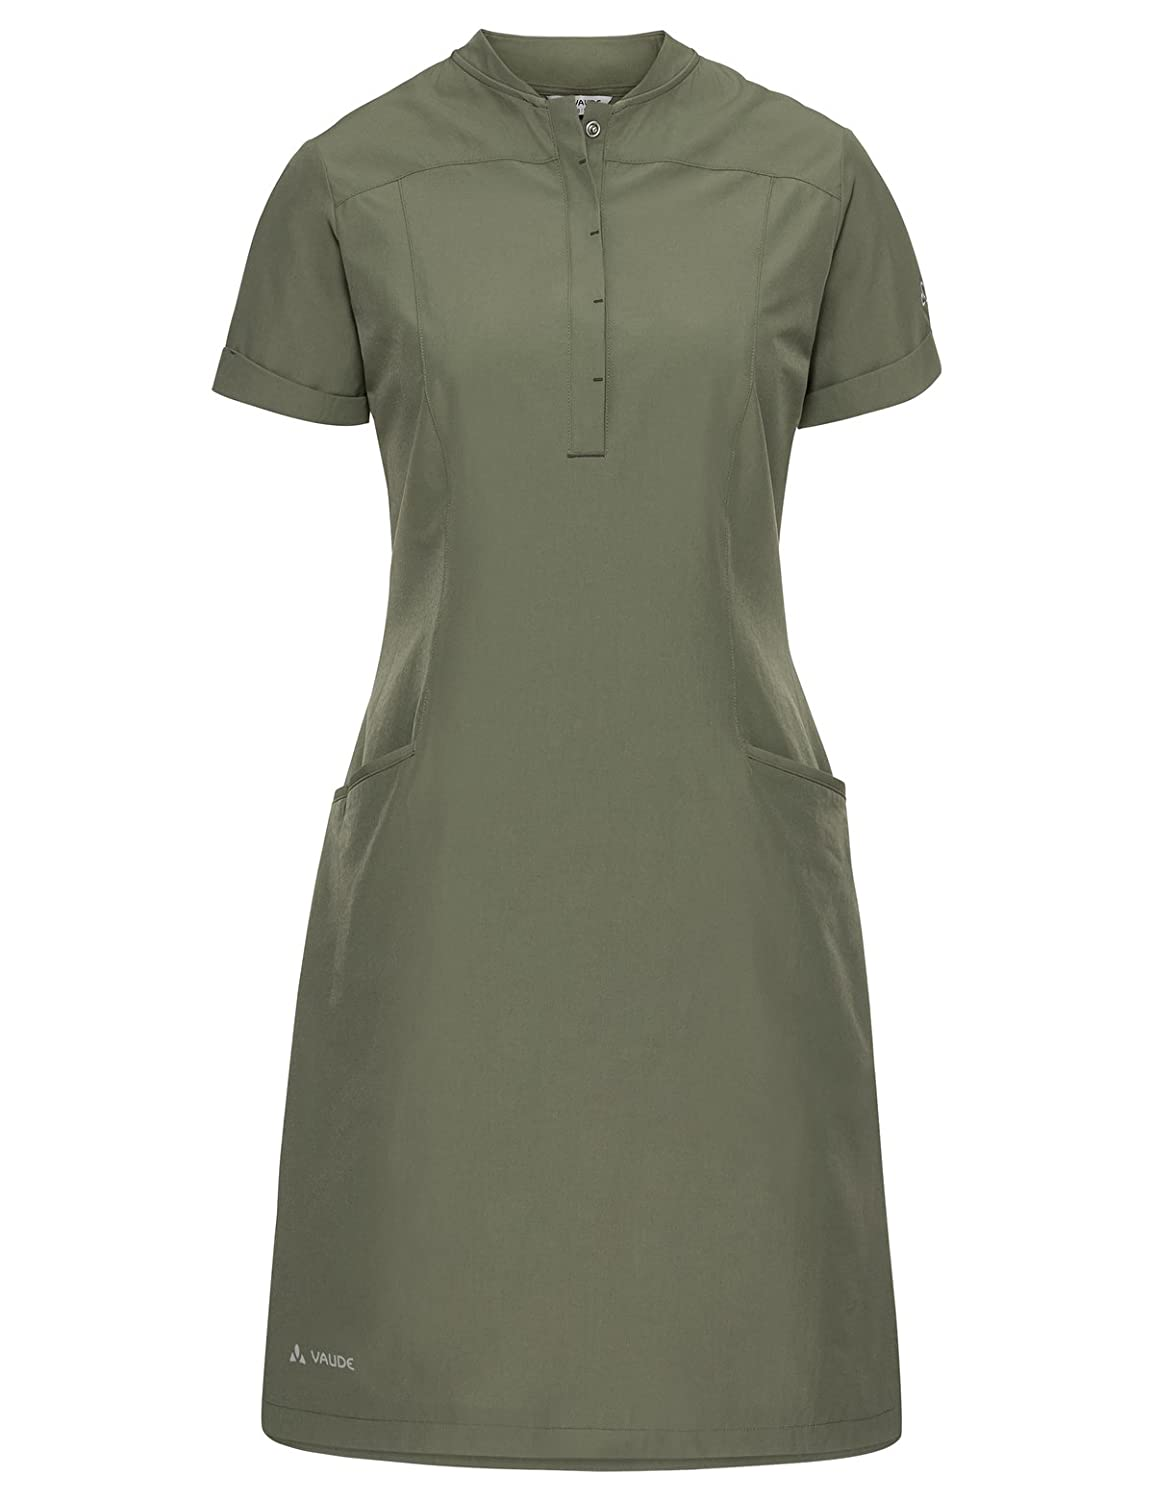 Vaude Damen Women's Skomer Dress Ii Kleid VADE5|#VAUDE